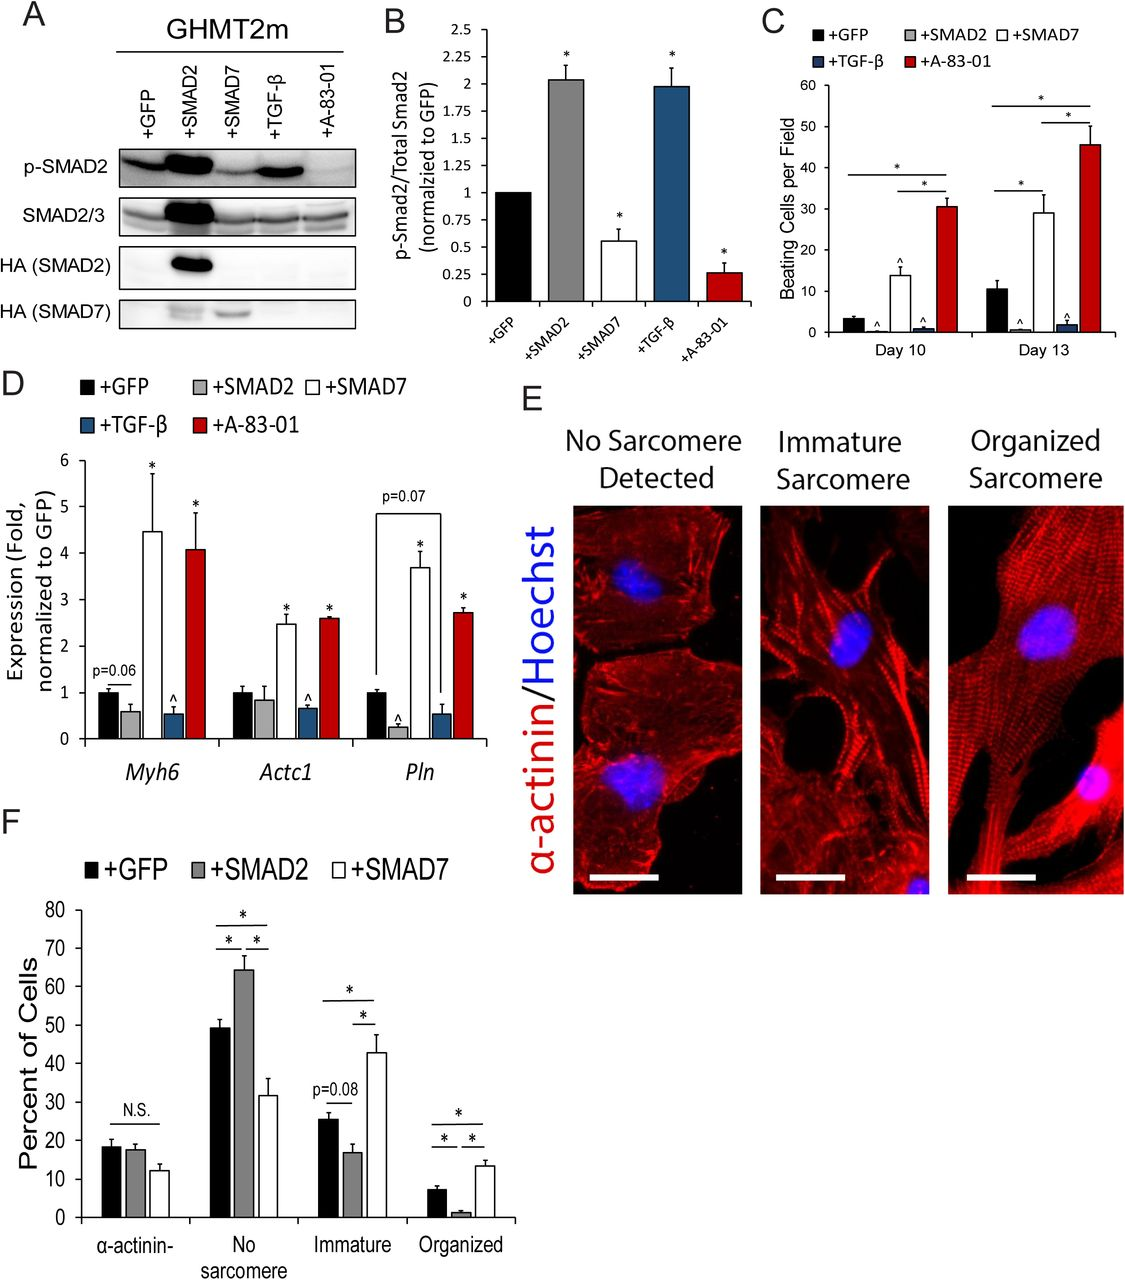 Activation of Canonical TGF-β signaling impairs cardiac reprogramming A and B) Immunoblot (A) and quantification (B) of phosphorylated SMAD2 (p-SMAD2) normalized to Total SMAD2 from whole cell extracts of Day 12 GHMT2m-reprogrammed cells co-infected with GFP, SMAD2, or SMAD7, or treated with 5 ng/mL TGF-β1 or 0.5 µM A-83-01. N = 3 per group. C) Beating cell counts per field (0.89 mm 2 ) from Day 10 and Day 13 GHMT2m-reprogrammed cells co-infected with GFP, SMAD2, or SMAD7, or treated with 5 ng/mL TGF-β1 or 0.5 µM A-83-01. N = 3 per group. D) Messenger RNA expression of cardiac genes Myh6 , Actc1 , and Pln harvested from Day 13 GHMT2m-reprogrammed MEFs co-infected with GFP, SMAD2, or SMAD7, or treated with 5 ng/mL TGF-β1 or 0.5 µM A-83-01. All data were normalized to the GFP group. N = 3 per group. Representative fluorescent images of indicated levels of sarcomere organization in Day 9 GHMT2m-reprogrammed MEFs. Red: α-actinin; Blue: Hoechst. Scale bar = 25 µM. E) Quantification of sarcomere organization in Day 9 GHMT2m-reprogrammed MEFs co-infected with GFP, SMAD2, or SMAD7. 10 fields of view per dish were collected across 3 individual experiments per group to analyze sarcomere organization. All data shown as mean ± SEM. * p